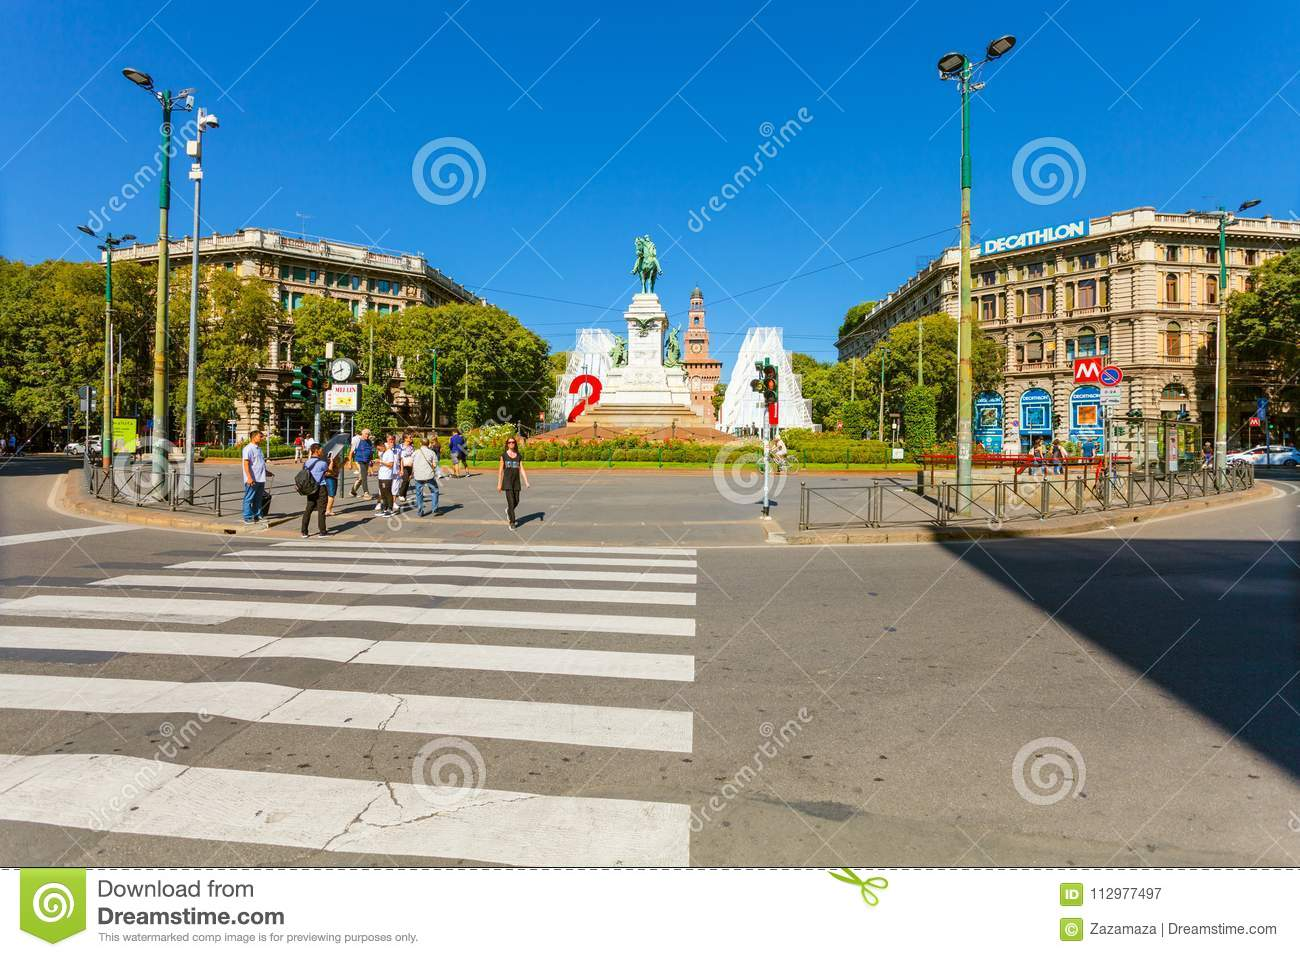 MILAN, ITALY - September 07, 2016: The crosswalk near metro station Cairoli which is located on the Piazzale Cairoli an